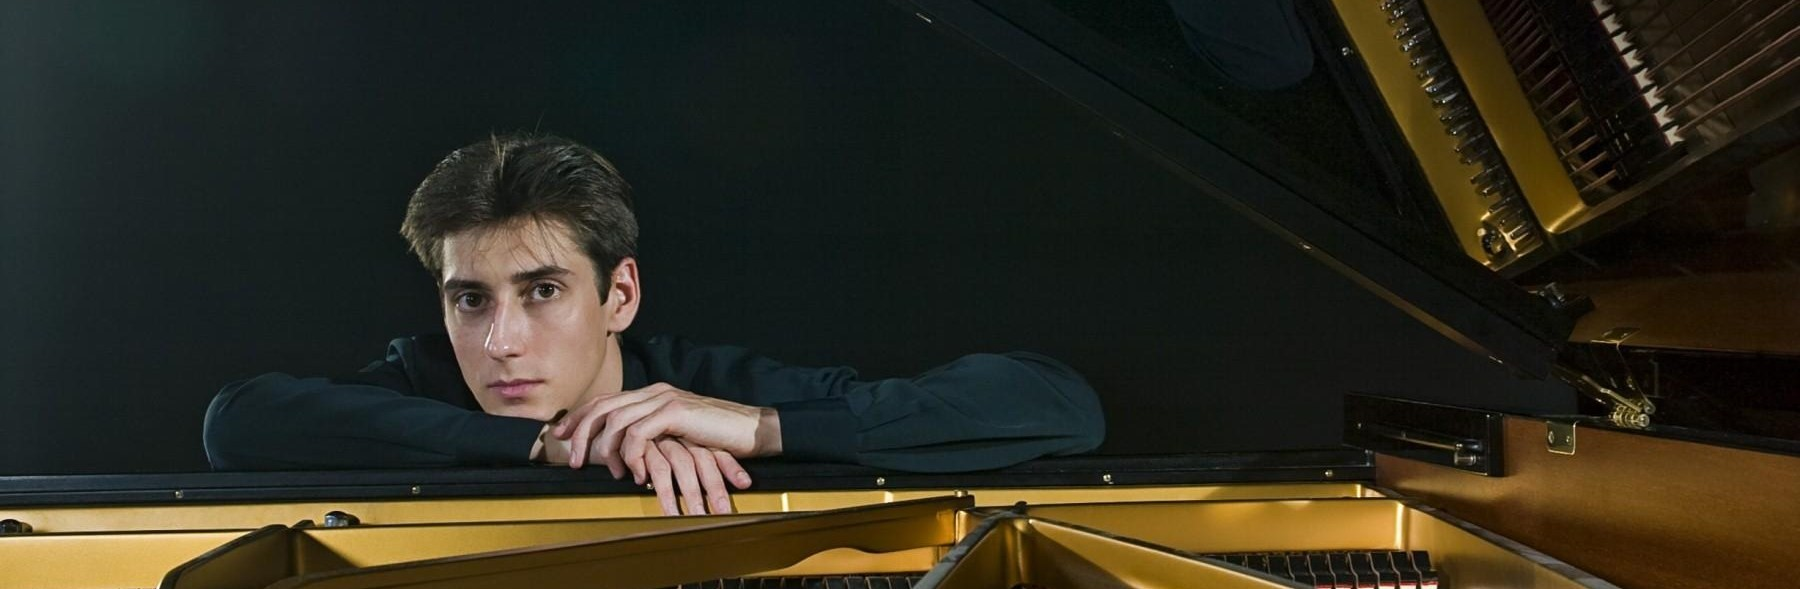 RUSSIA, GERMANY, BRITAIN AND BEYOND: Harriman series brings pianistic giant for a second visit